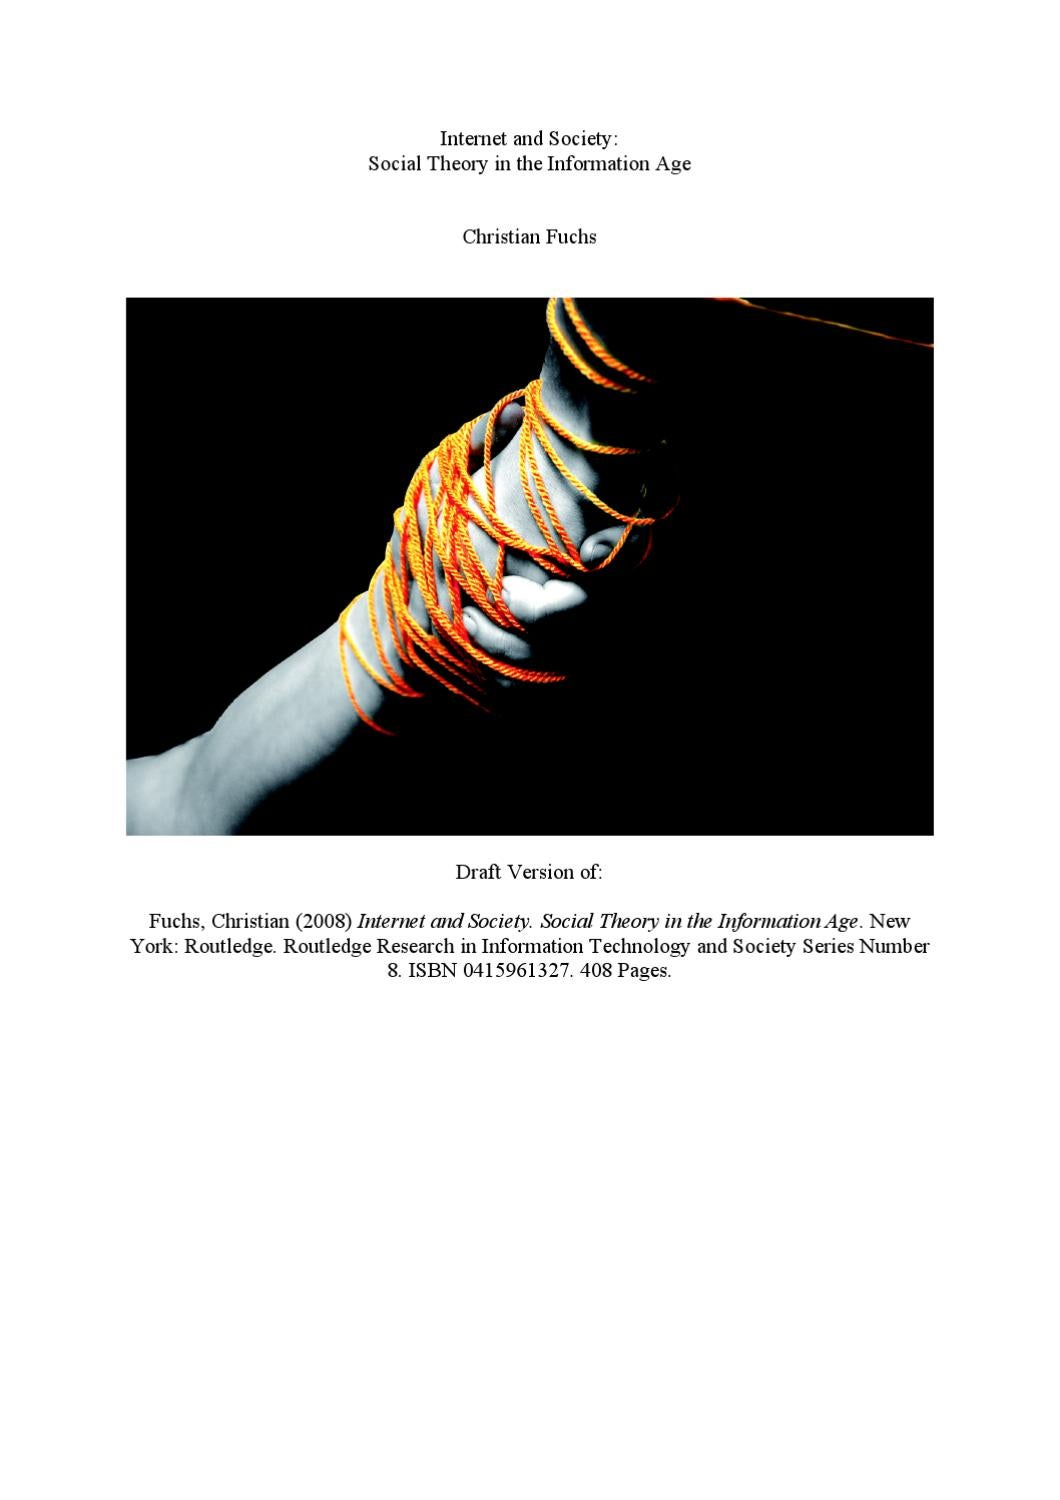 Internet and Society - Social Theory in the Information Age